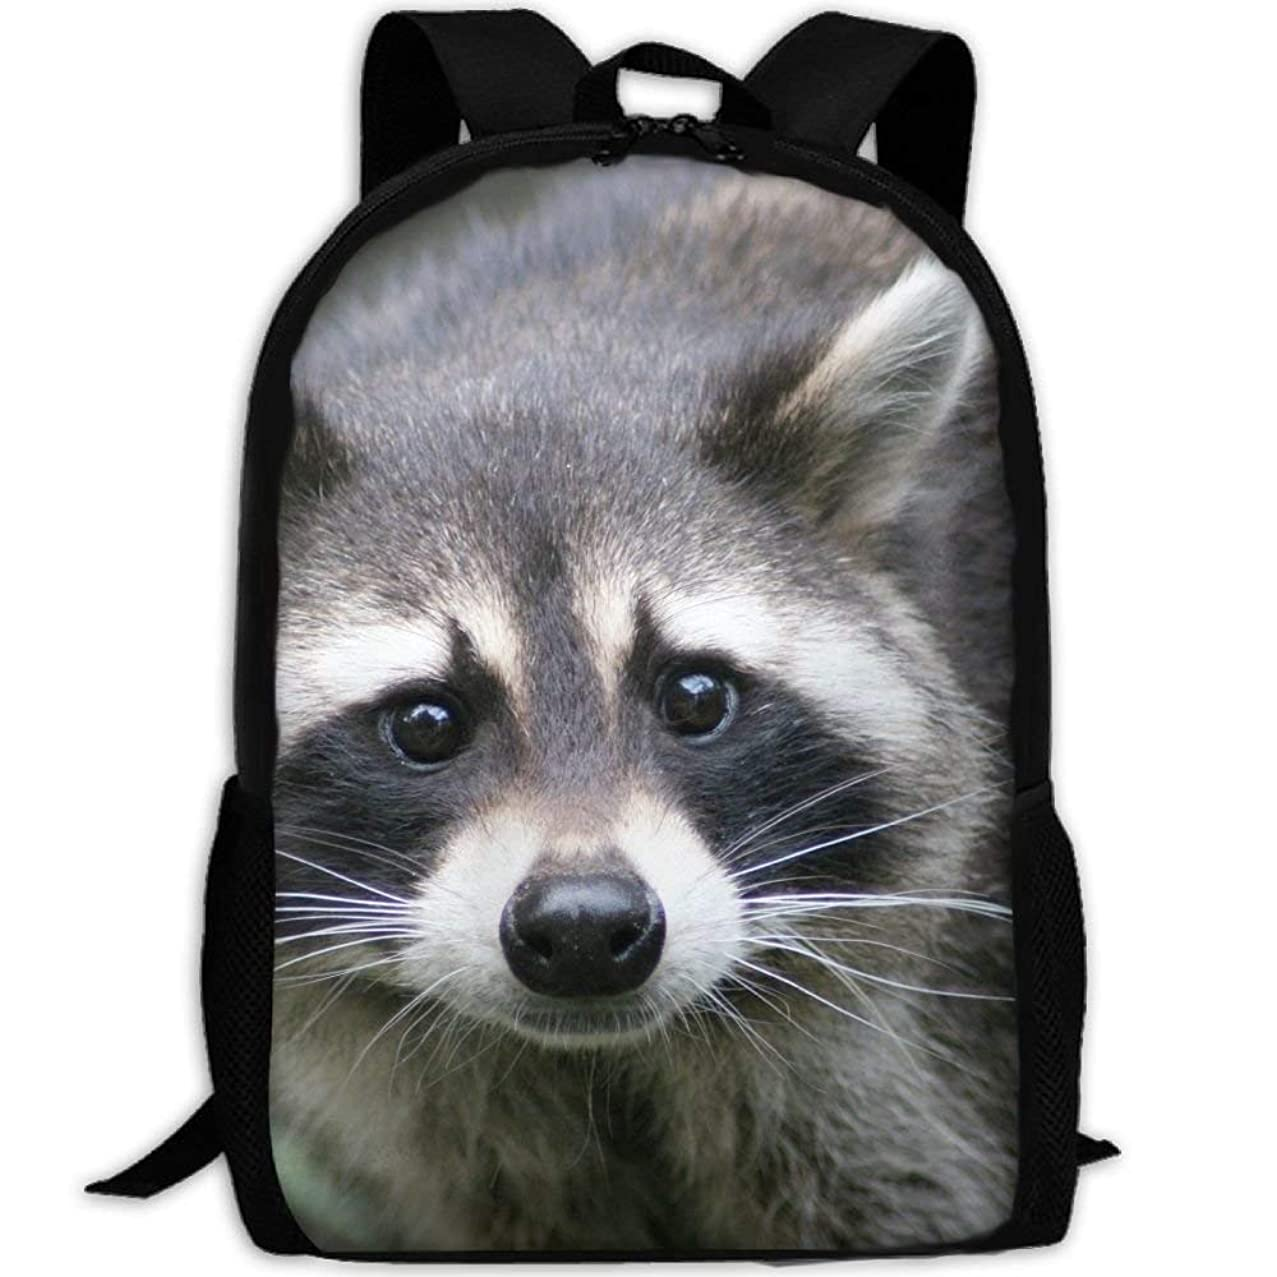 GongYe Raccoon Backpack for Adults Hiking Lizard Rest Durable Shoulders Bag Daypacks Color-36One Size